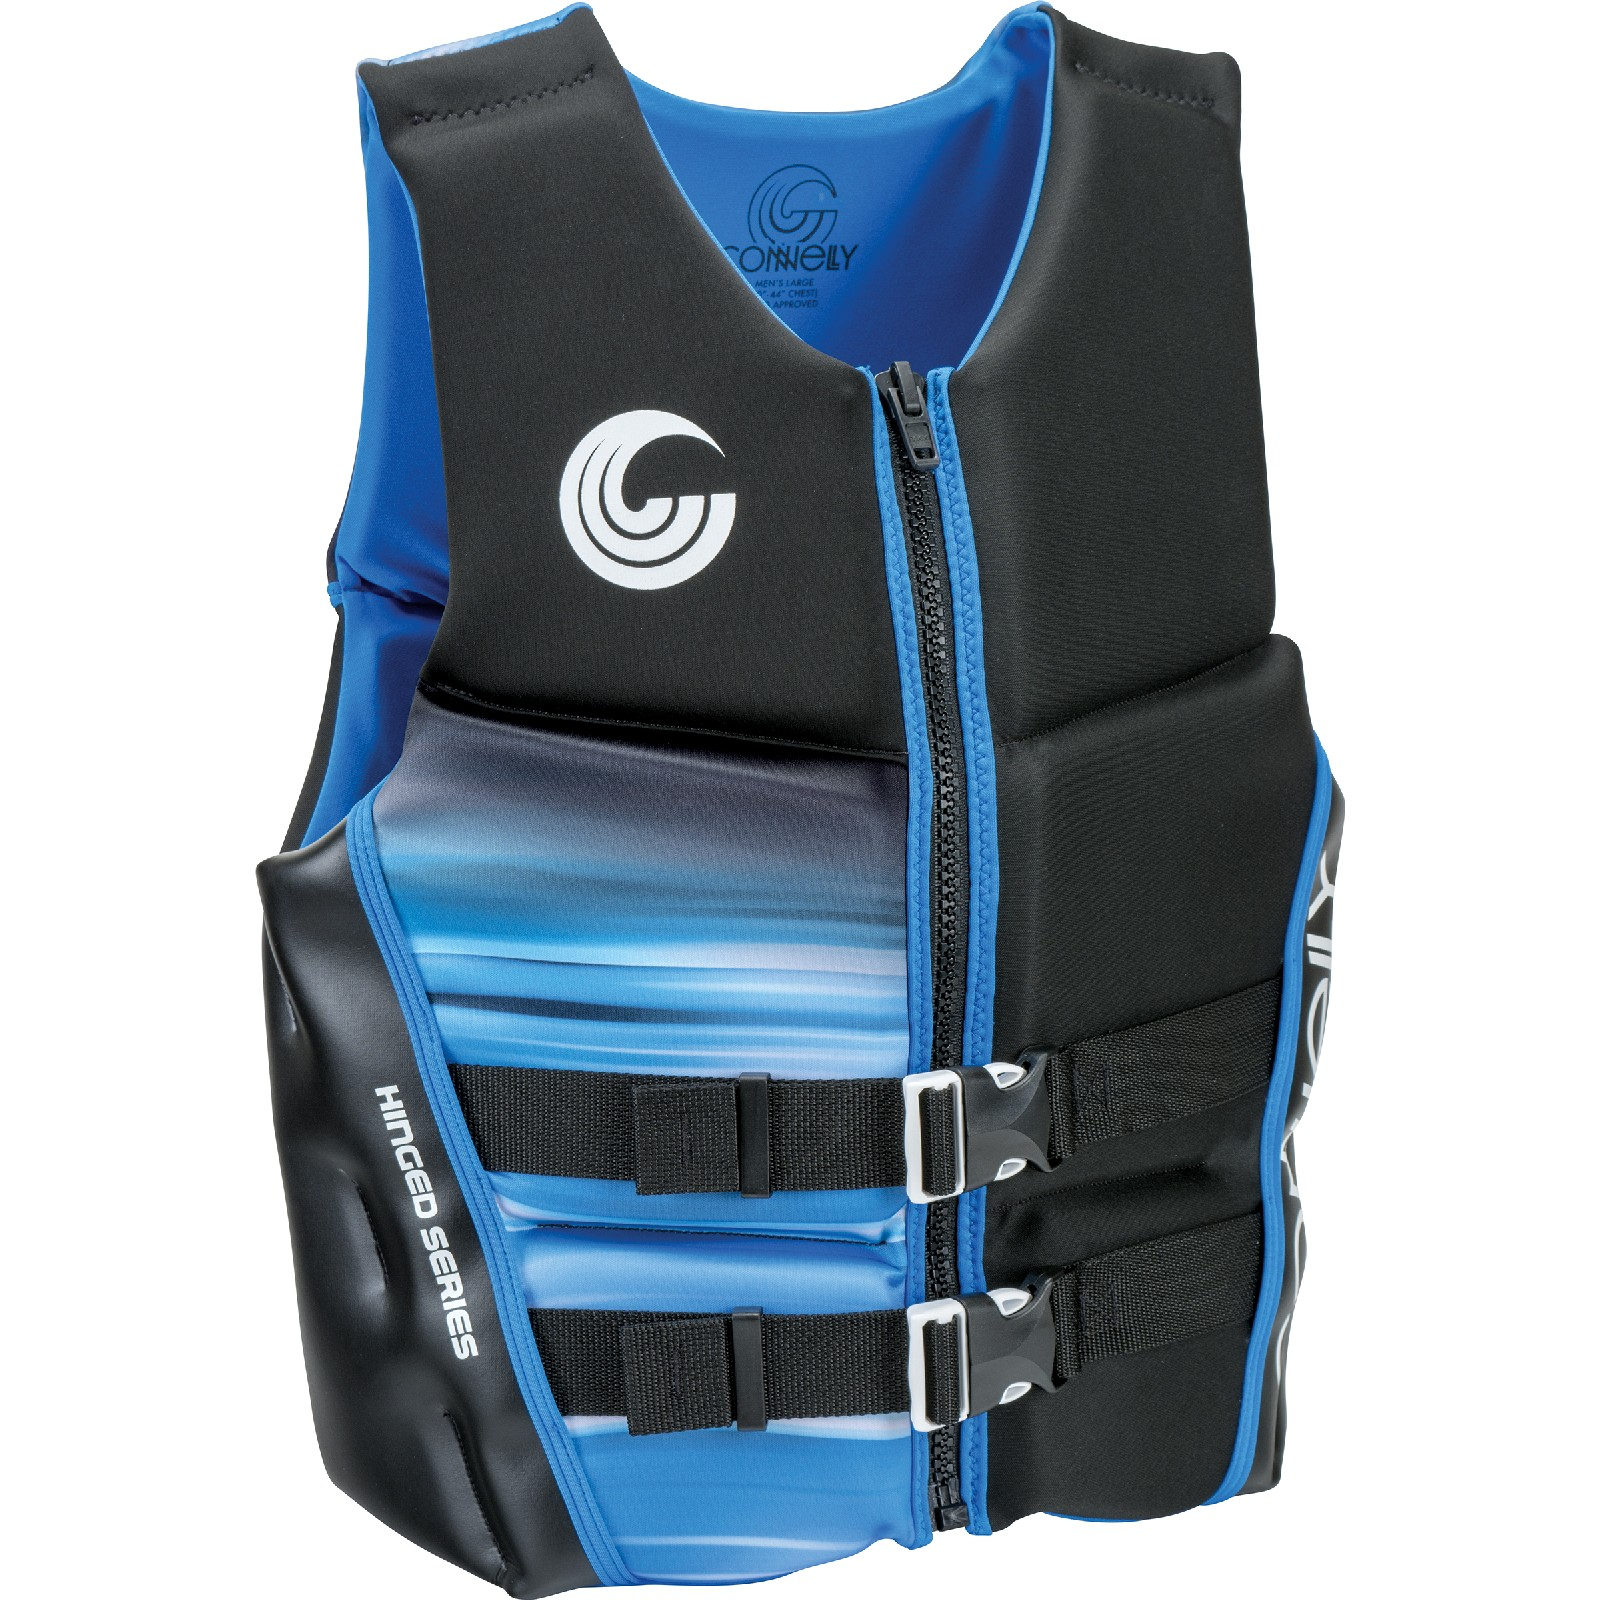 CLASSIC NEO LIFE VEST CONNELLY 2019